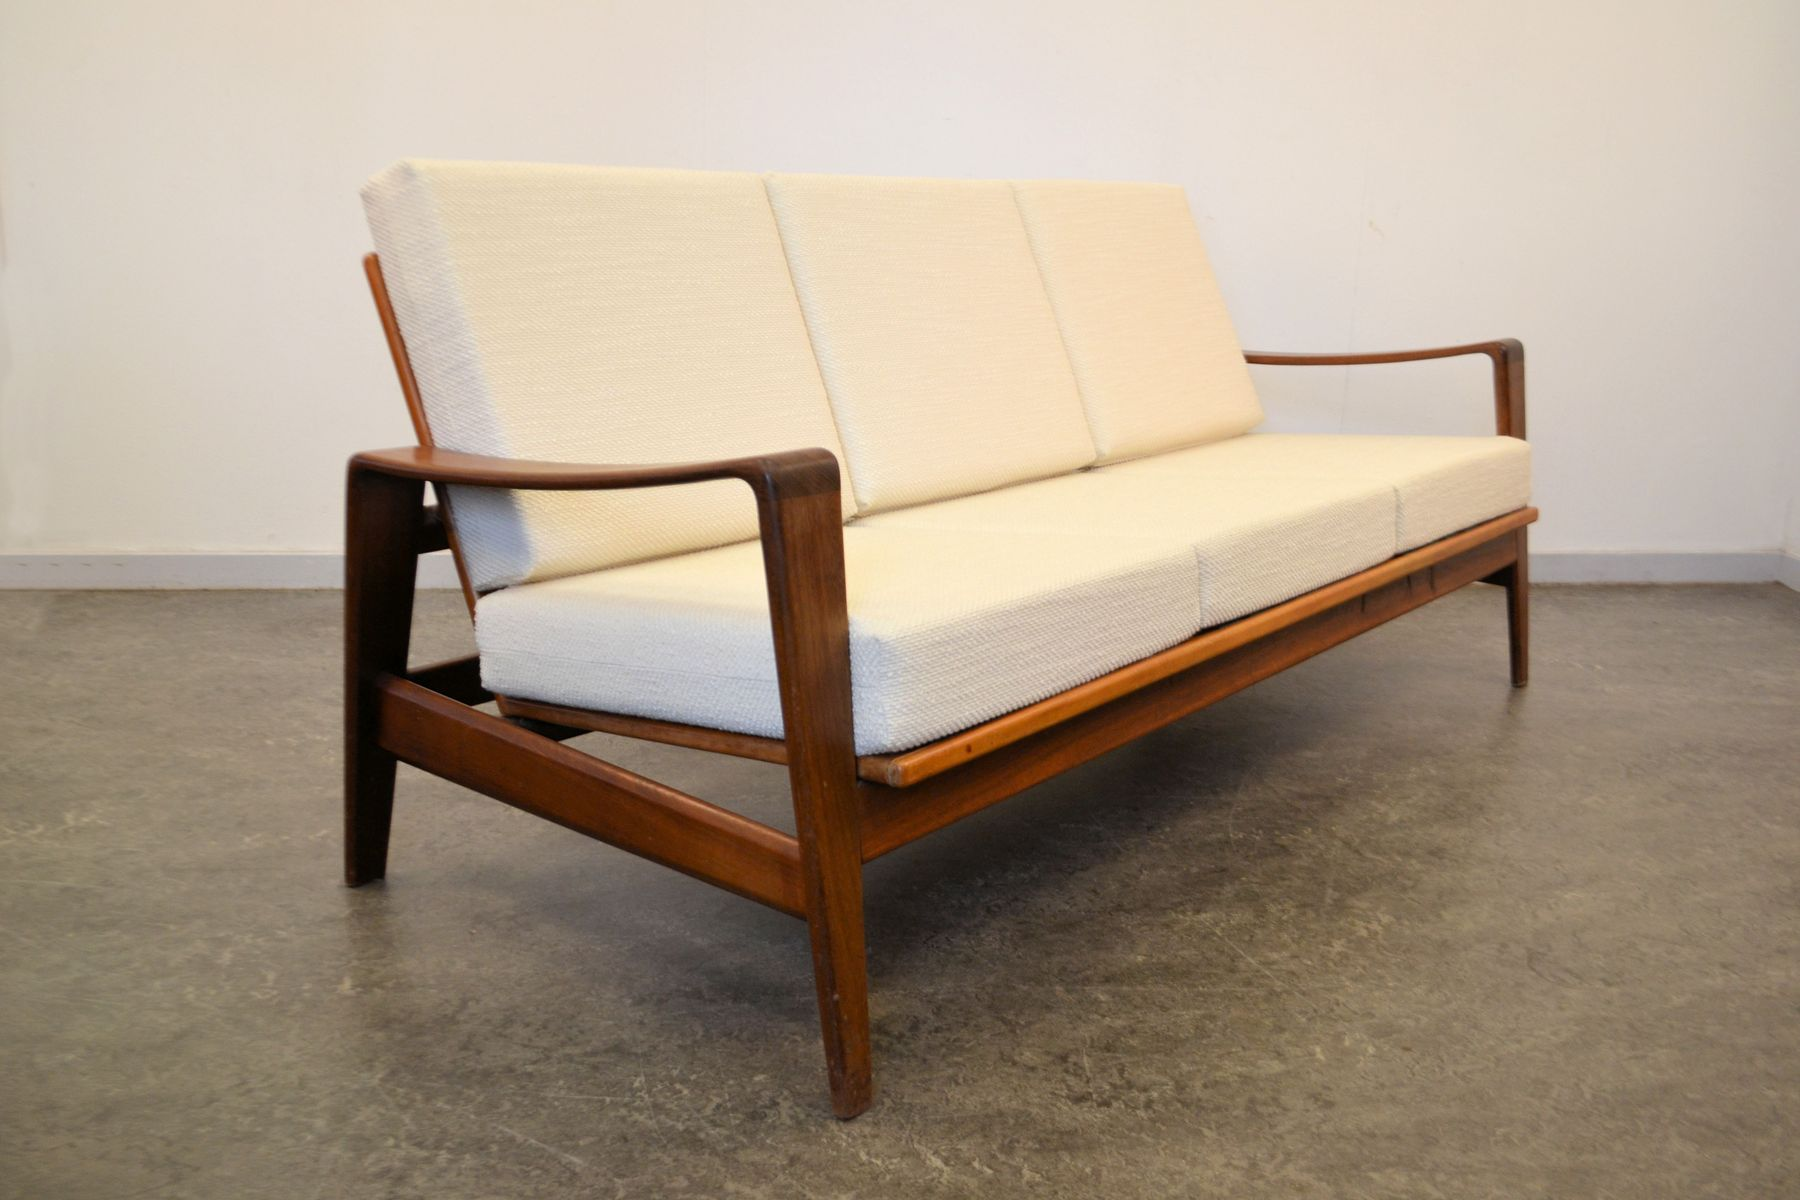 teak 3 seater sofa by arne wahl iversen for komfort for sale at pamono. Black Bedroom Furniture Sets. Home Design Ideas